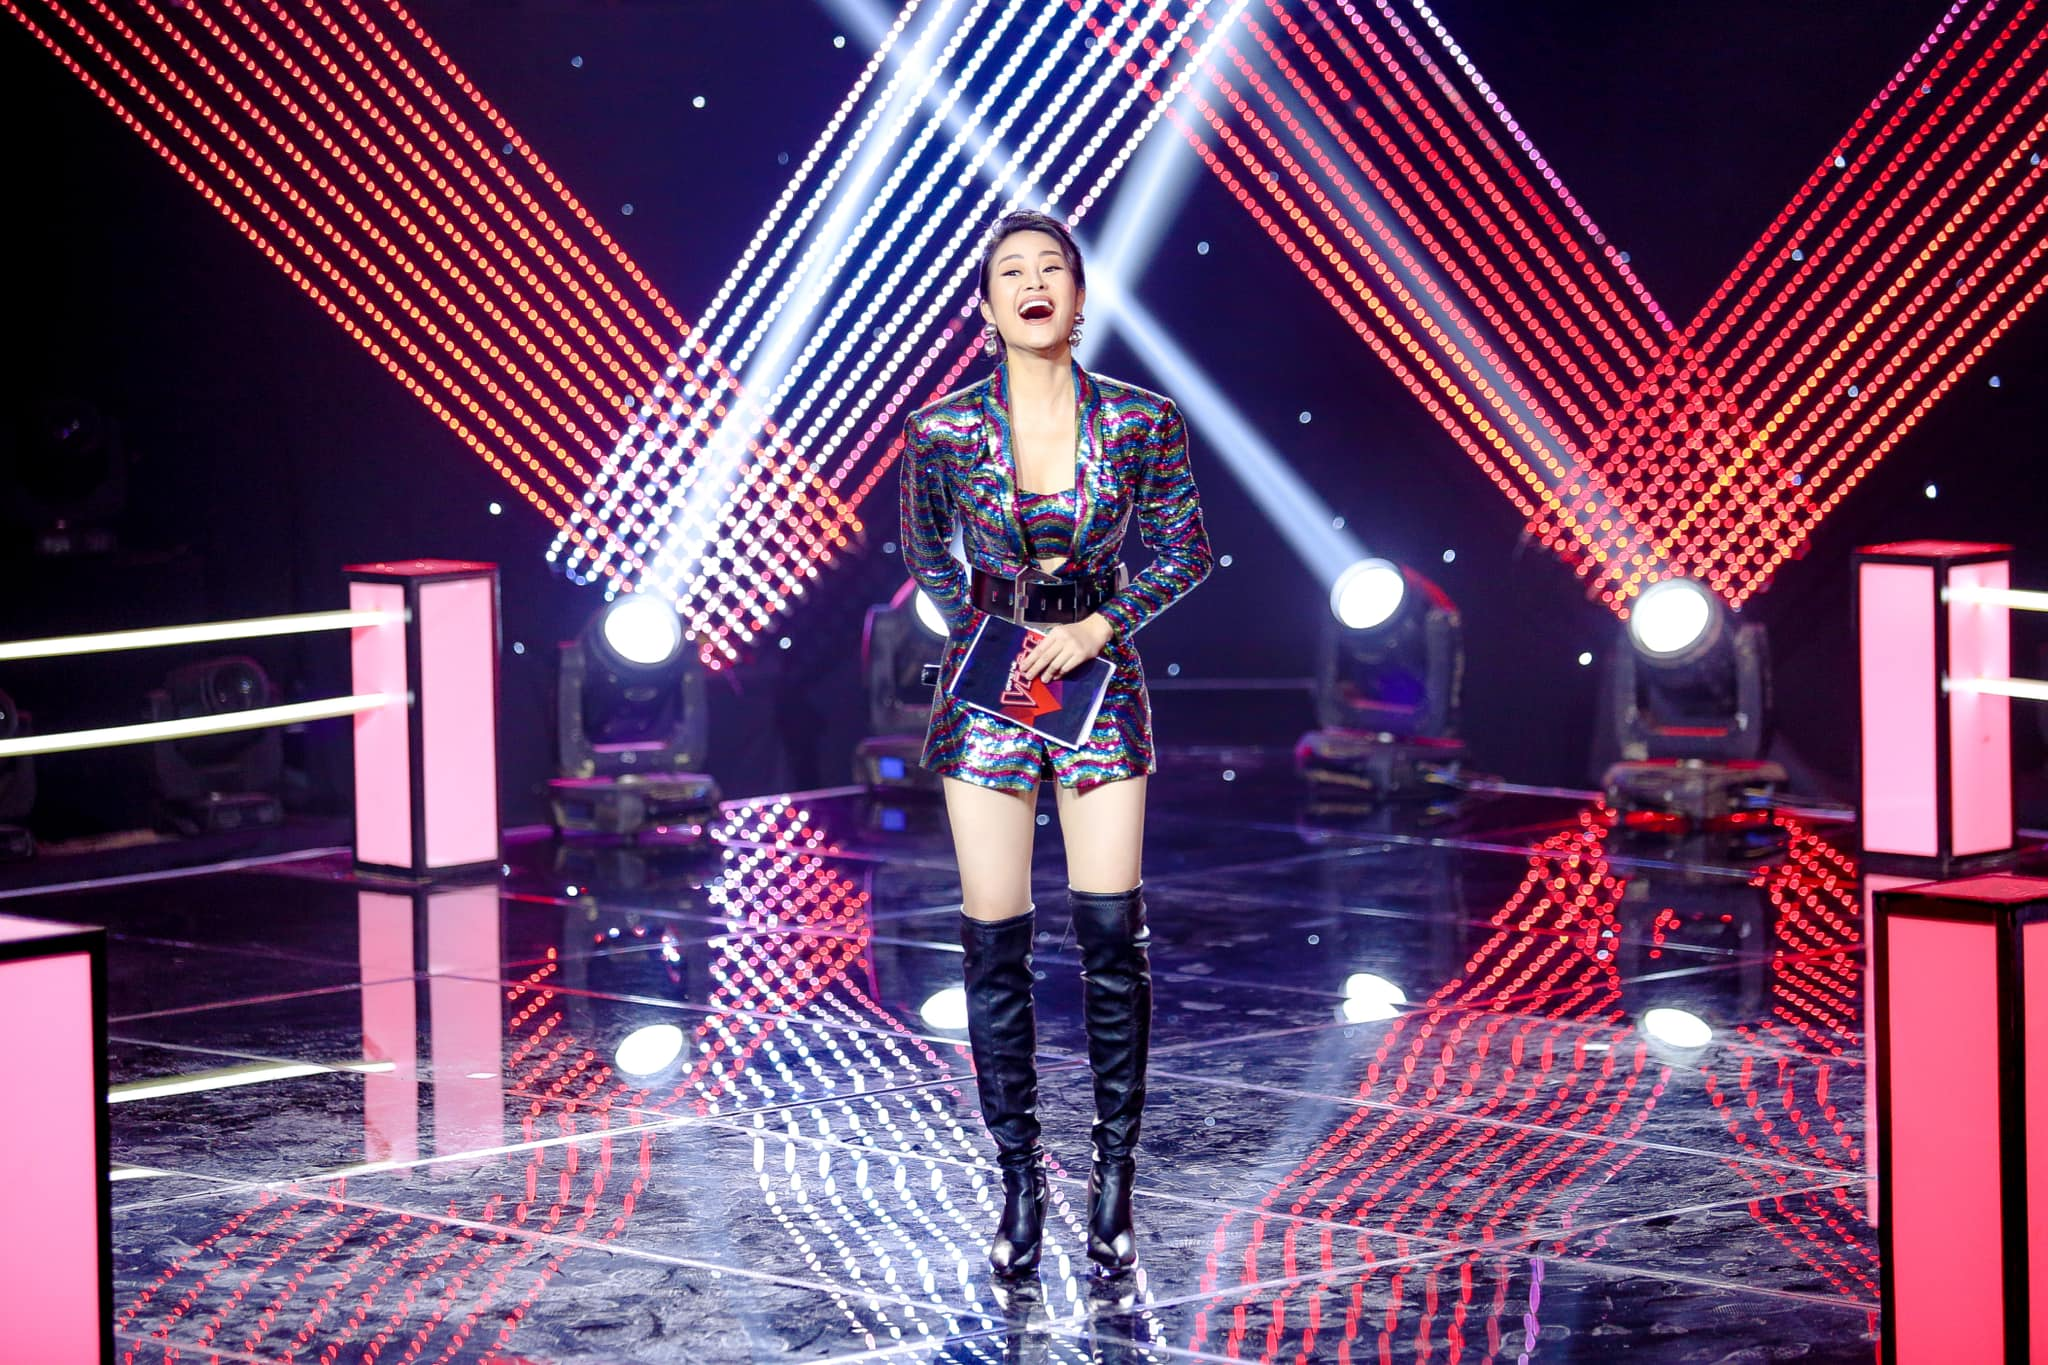 he lo thiep cuoi cua mc goi cam the voice voi dong nghiep vtv hinh anh 9